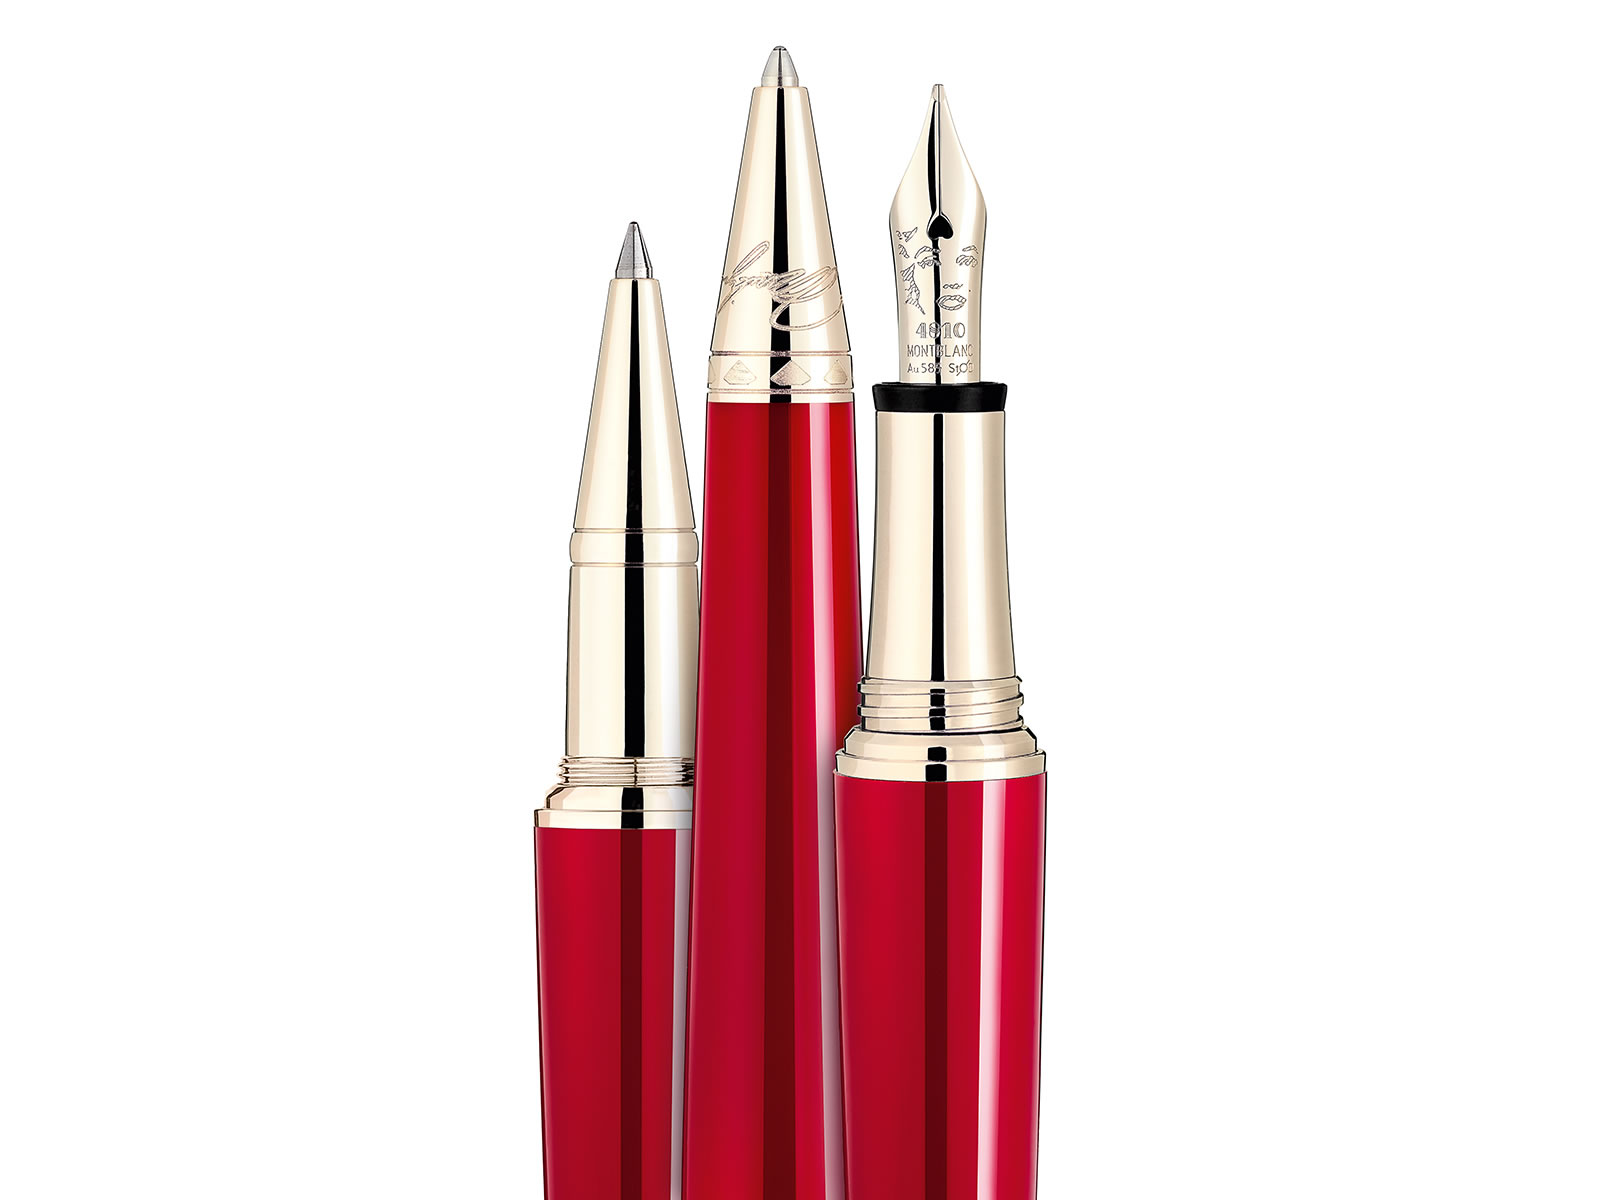 Montblanc-Muses-Edition-Marilyn-Monroe-3.jpg